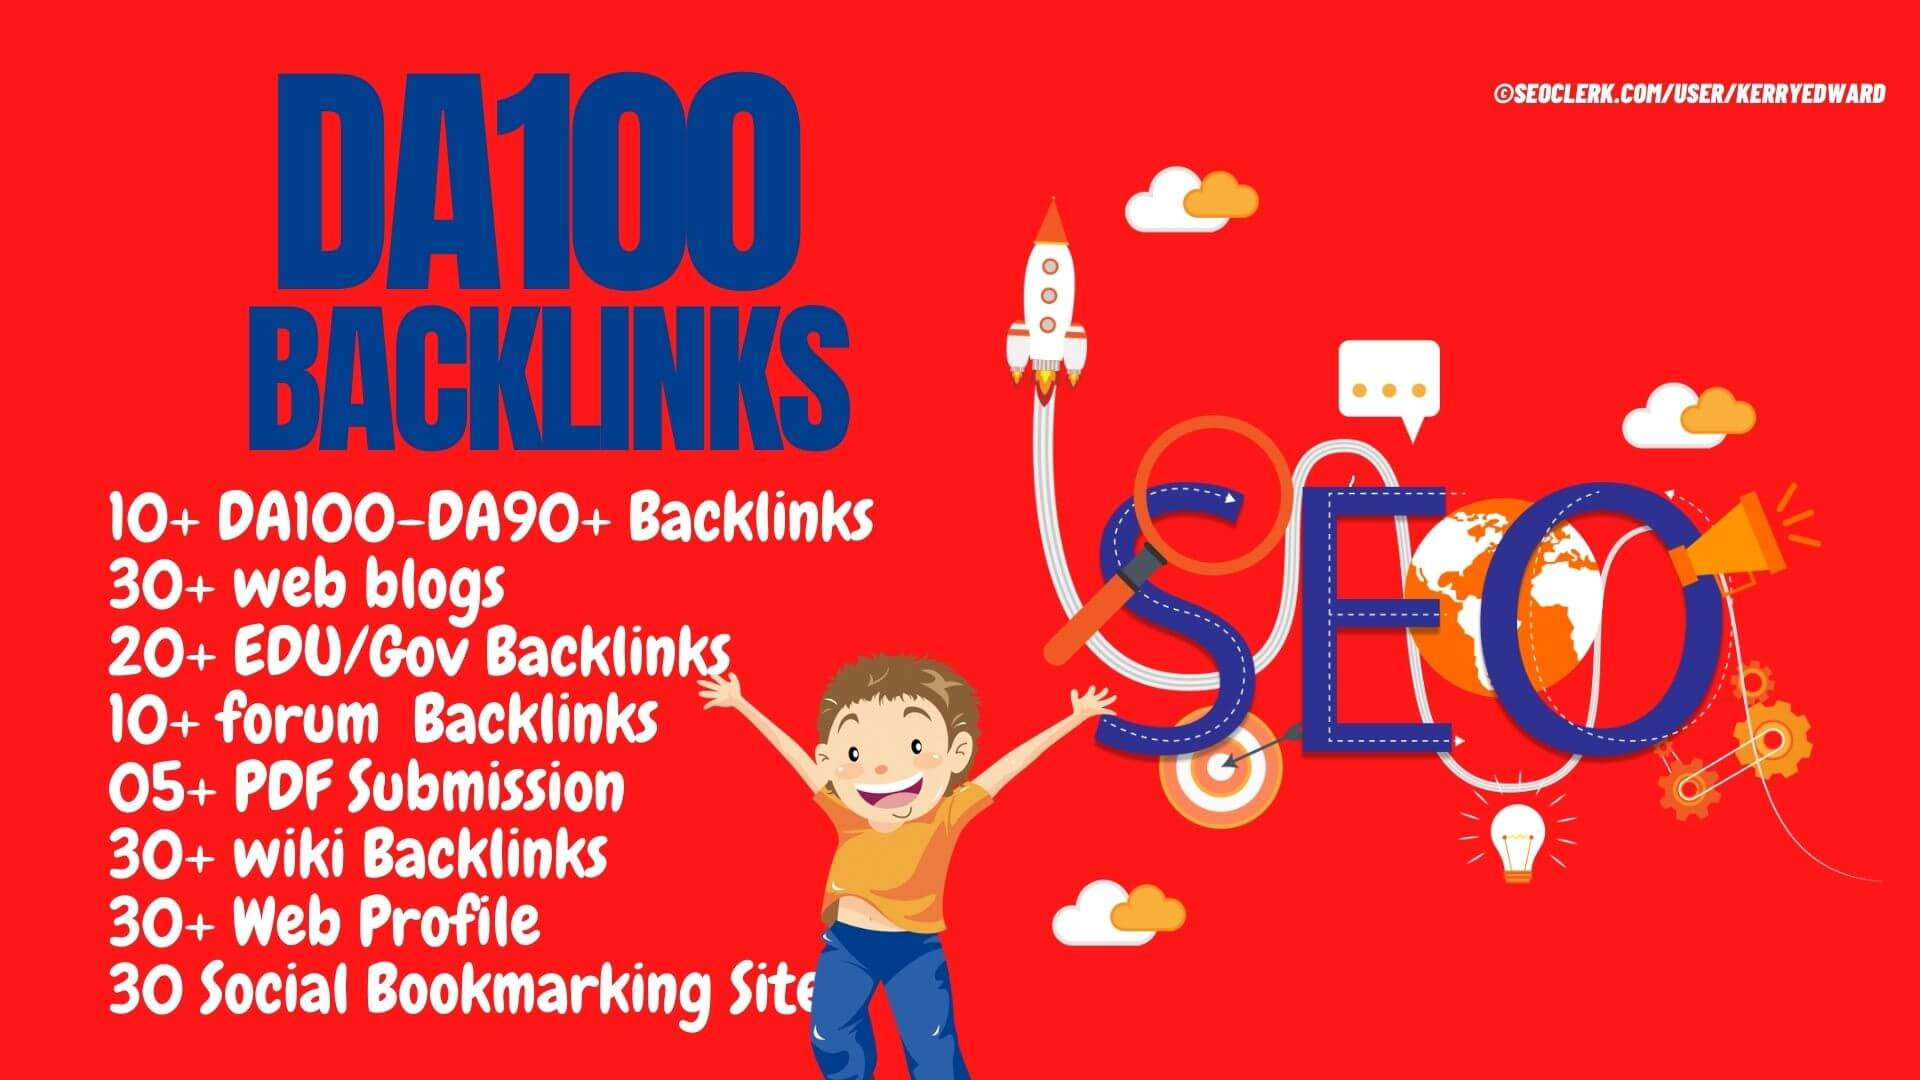 PR10 Backlinks 60 Web,  20 Edu/Gov,  30 Wiki,  30 Web,  30 Social Bookmarking,  10 Forum,  10 DA90+